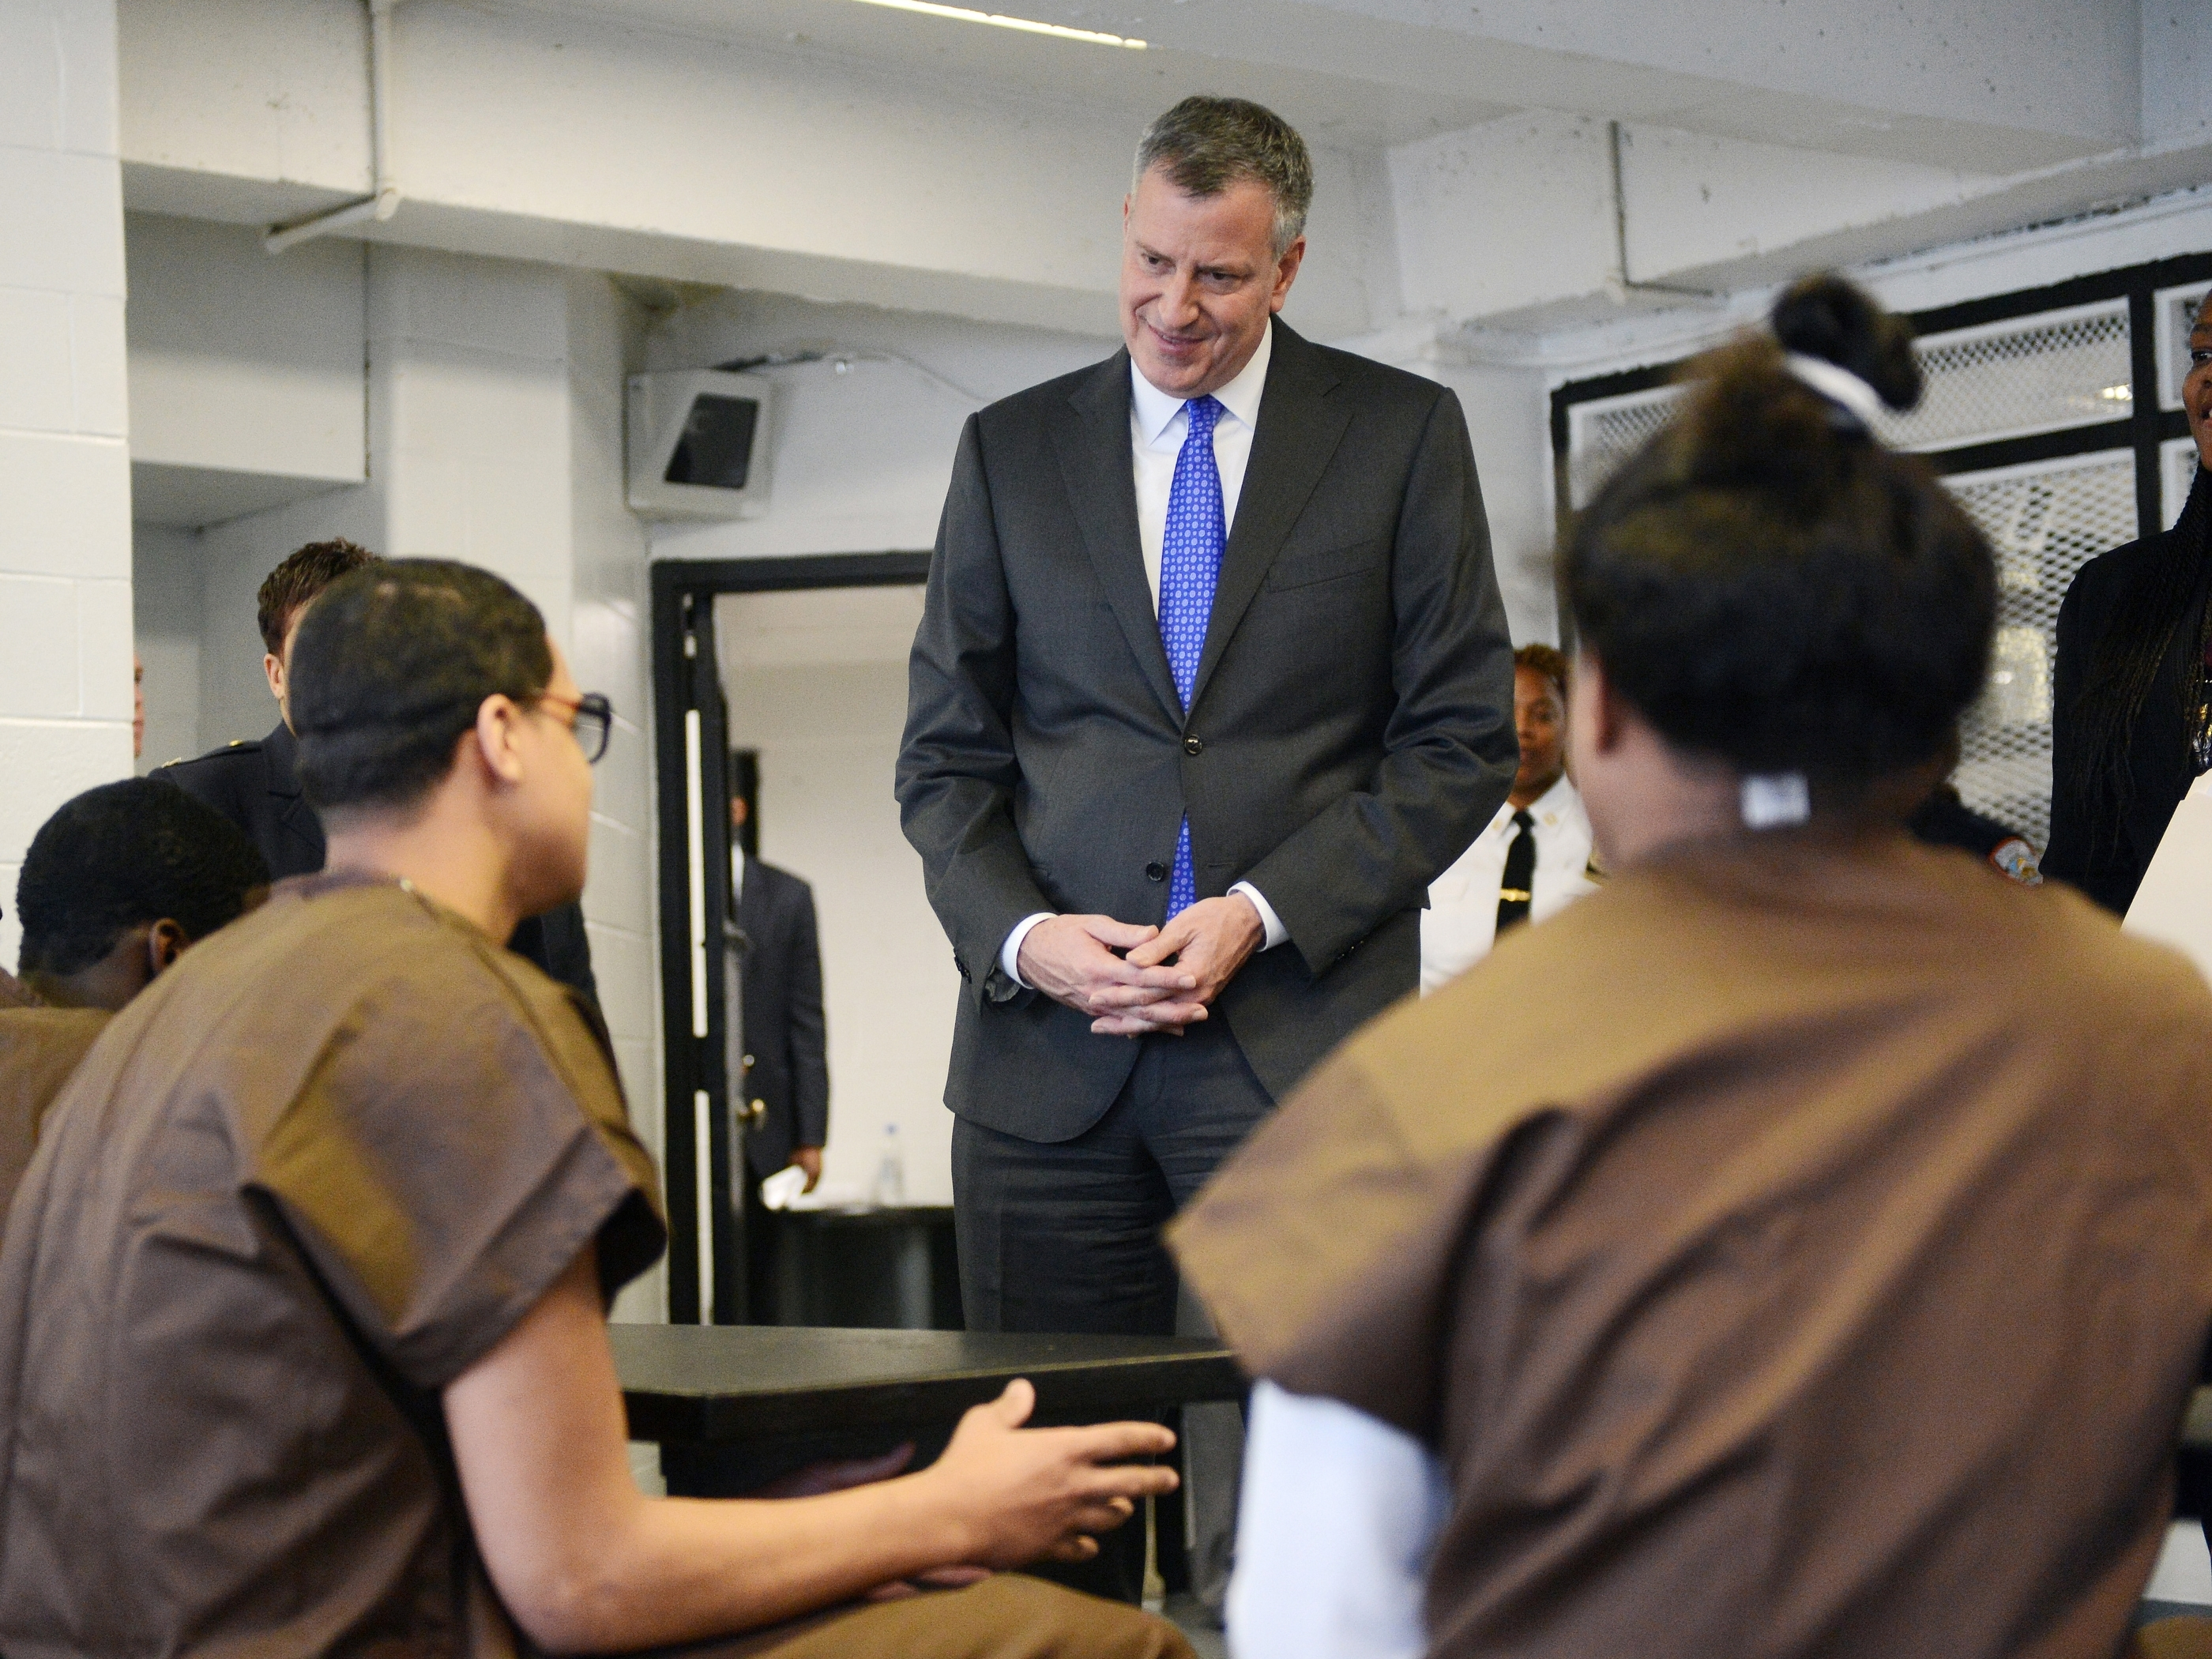 In New York, Support Grows For Keeping Teens Out Of Adult Prisons